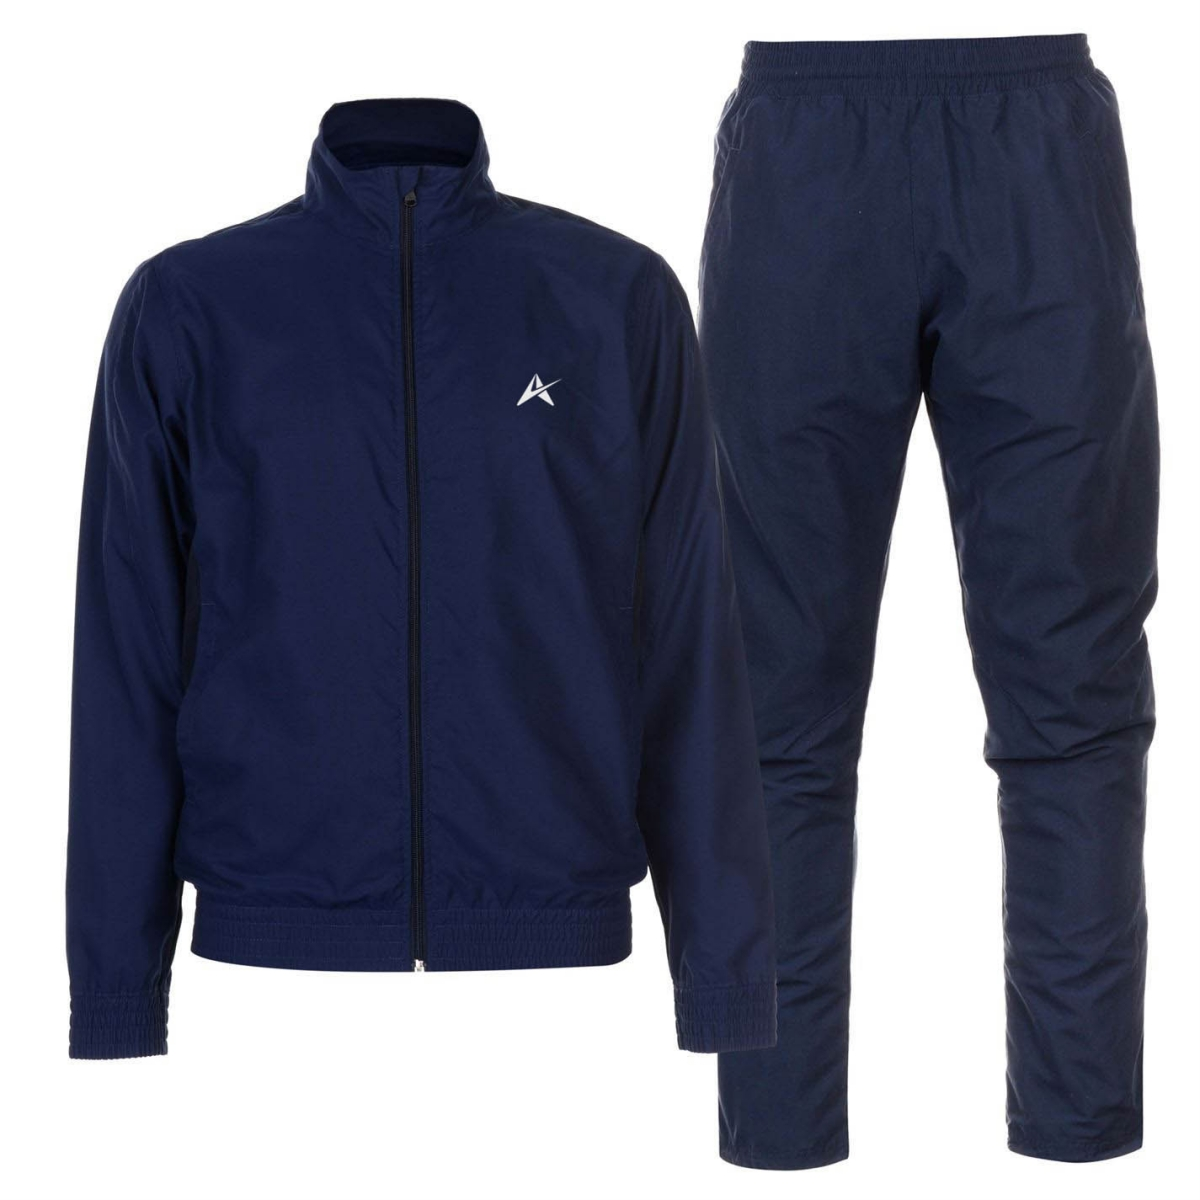 Men's Casual JOGGING SUIT Long Sleeve Running Jogging Athletic Sports Set  A1-503